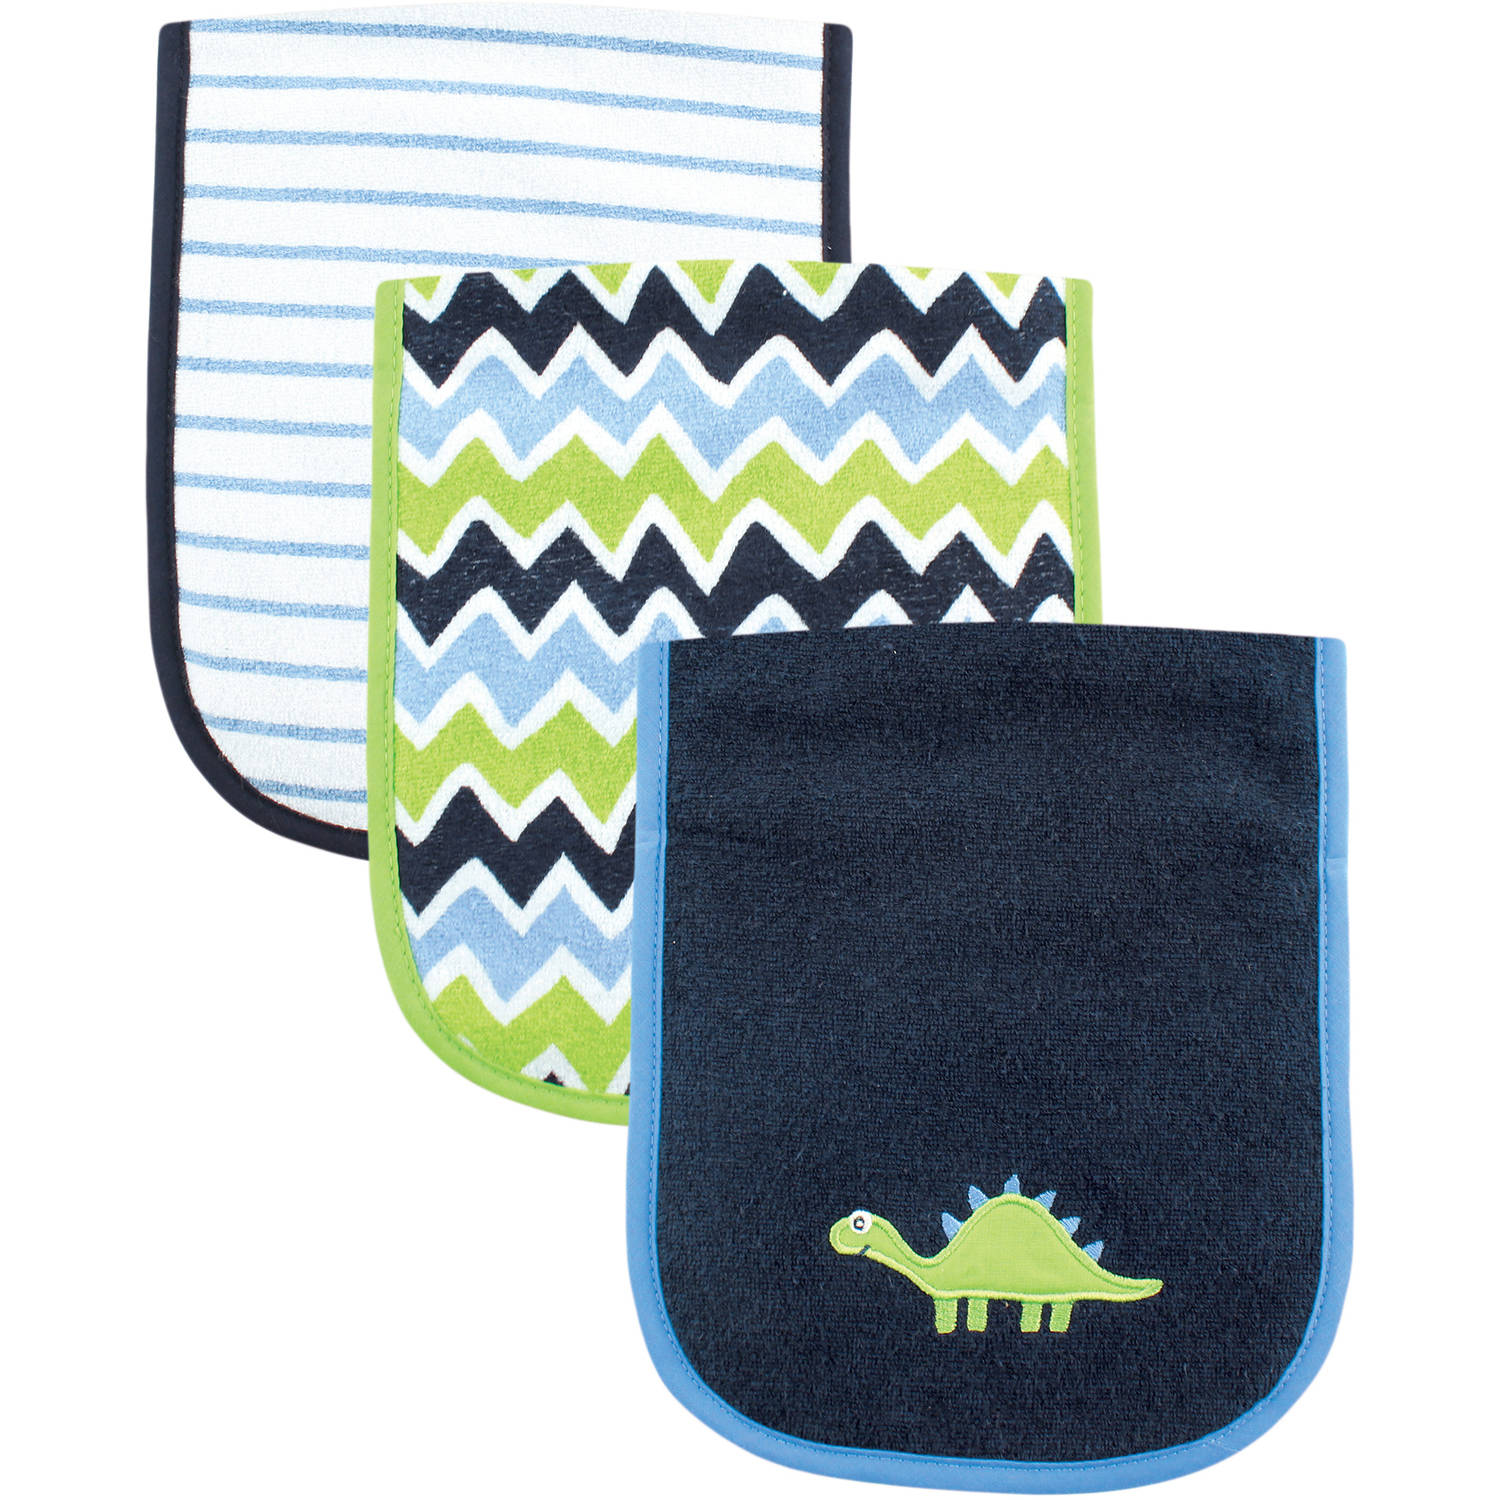 Luvable Friends Burp Cloth, 3pk, Dinosaur